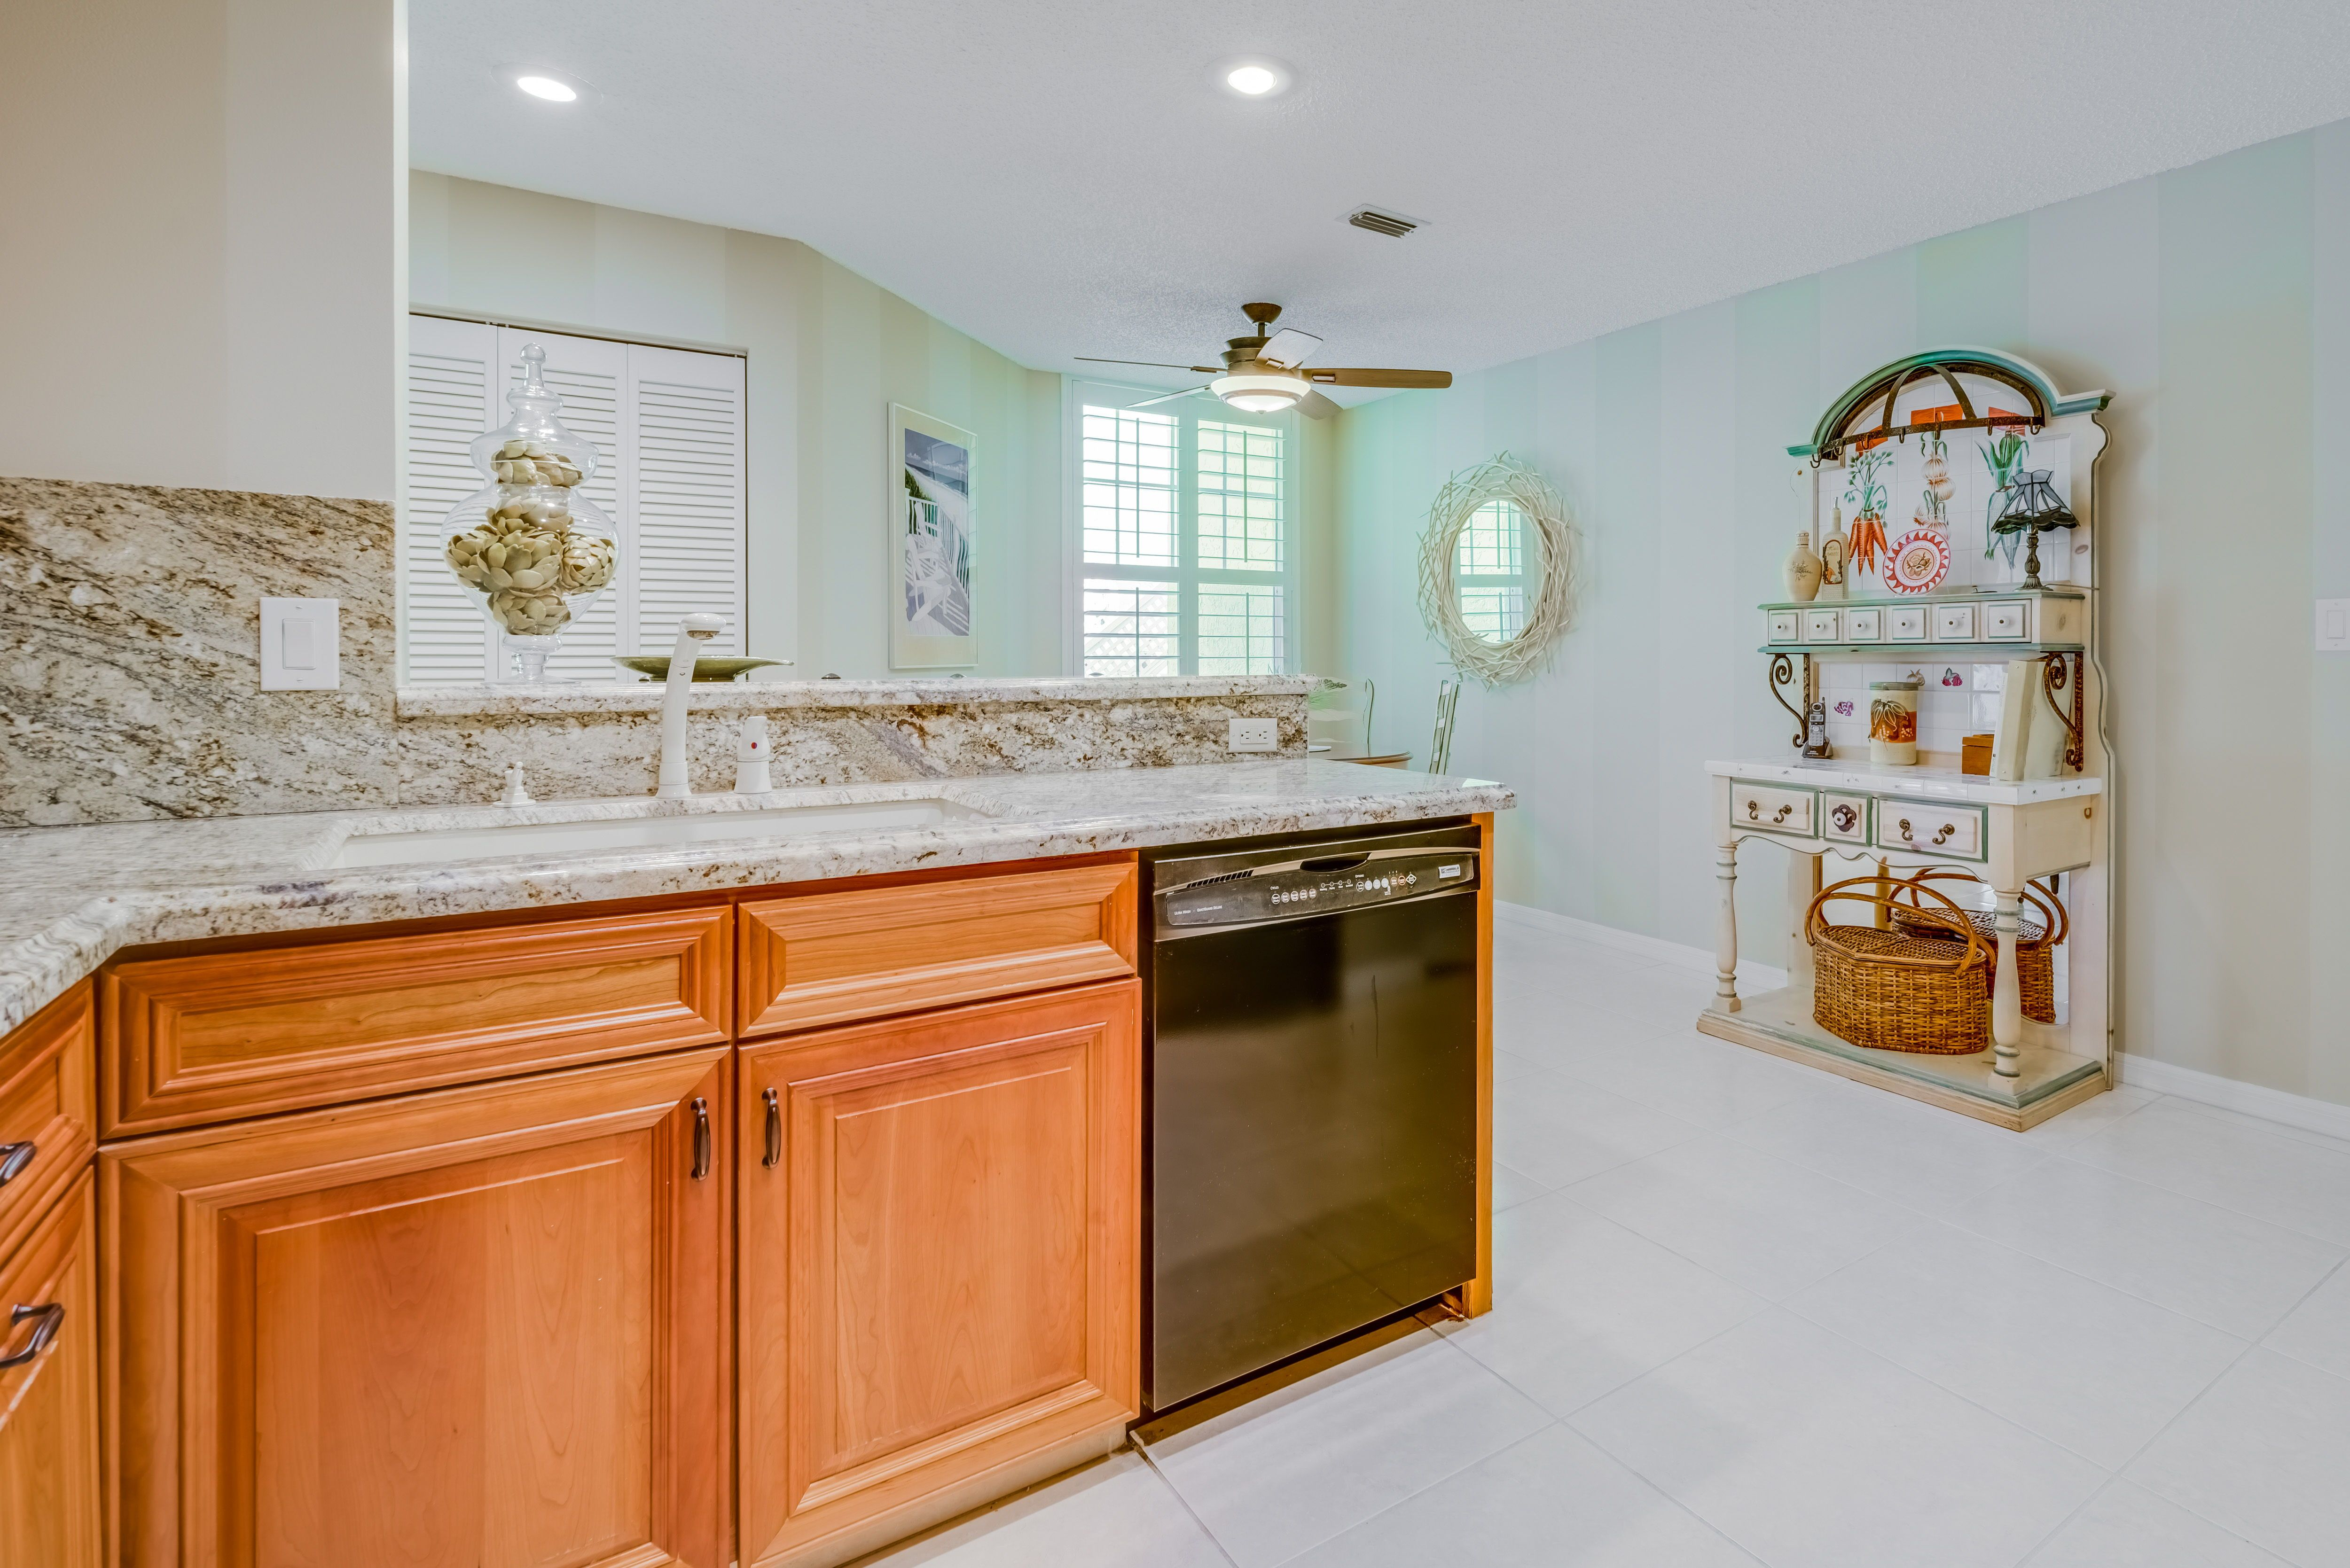 The kitchen has been updated with natural cherry cabinets highend